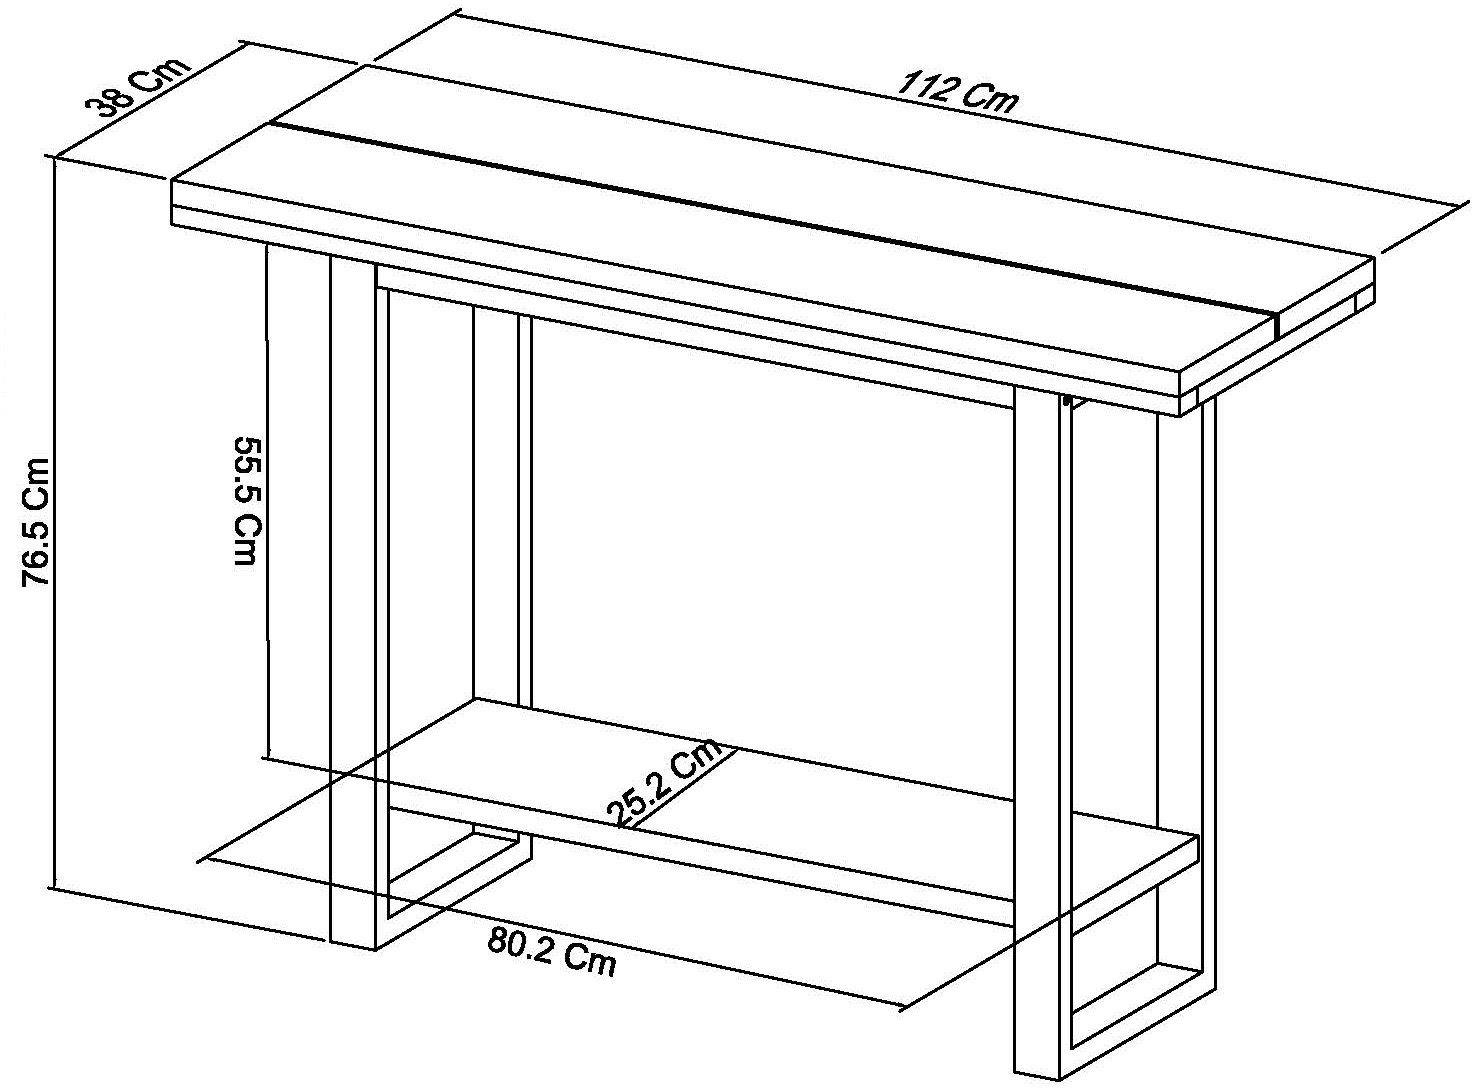 BRINDISI CONSOLE TABLE - DIMENSIONS